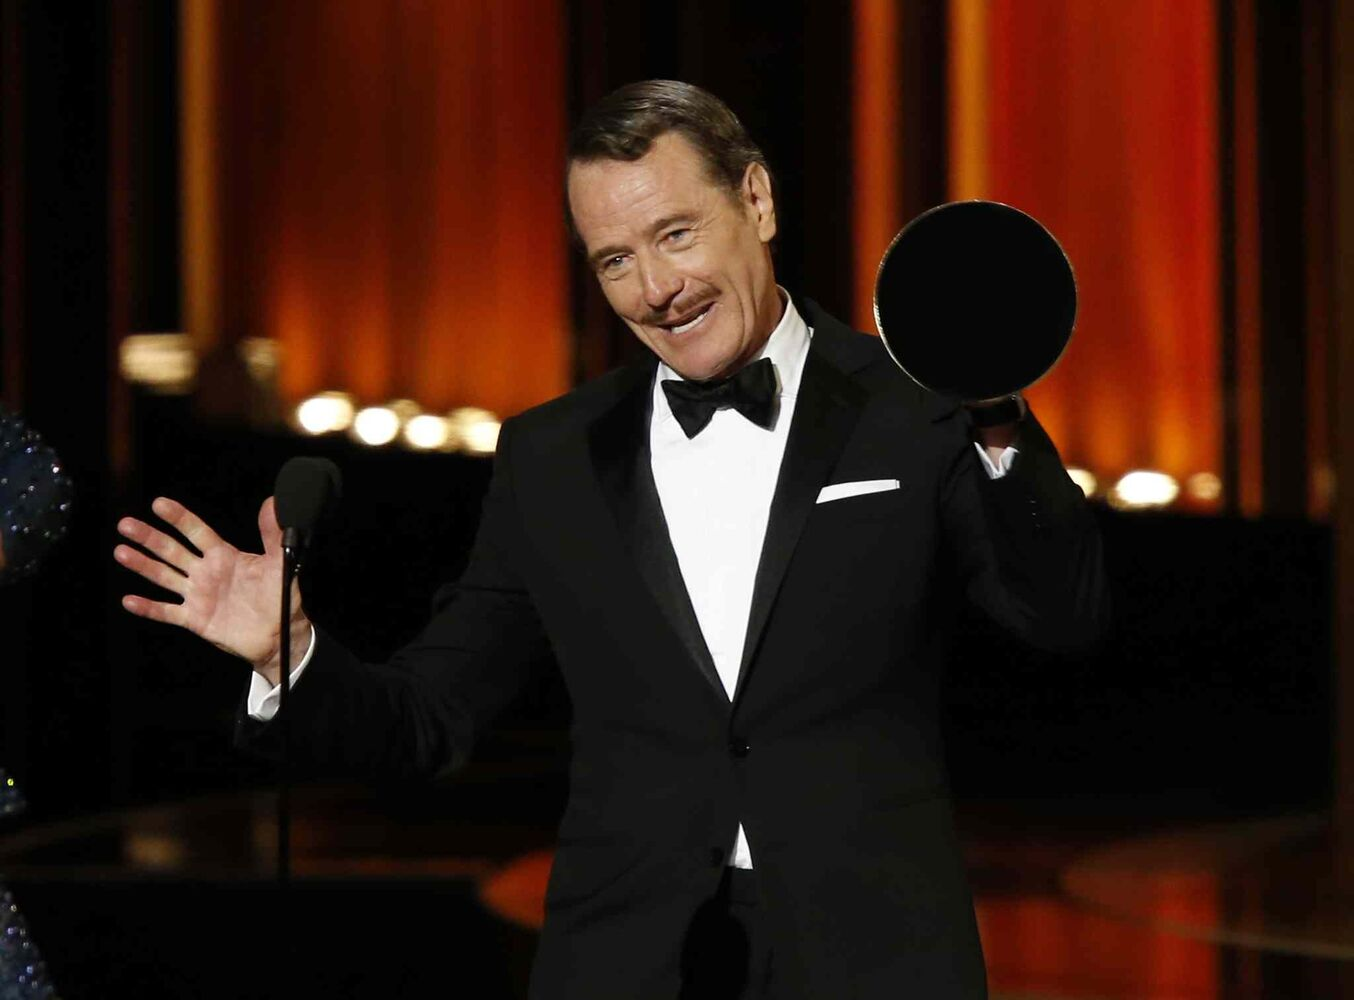 Bryan Cranston accepts the award for Outstanding Lead Actor In A Drama Series for his role in Breaking Bad during the 66th Primetime Emmy Awards in Los Angeles. His co-stars Anna Gunn and Aaron Paul also won for their supporting roles and the show took home an Emmy for outstanding drama series. (REUTERS)